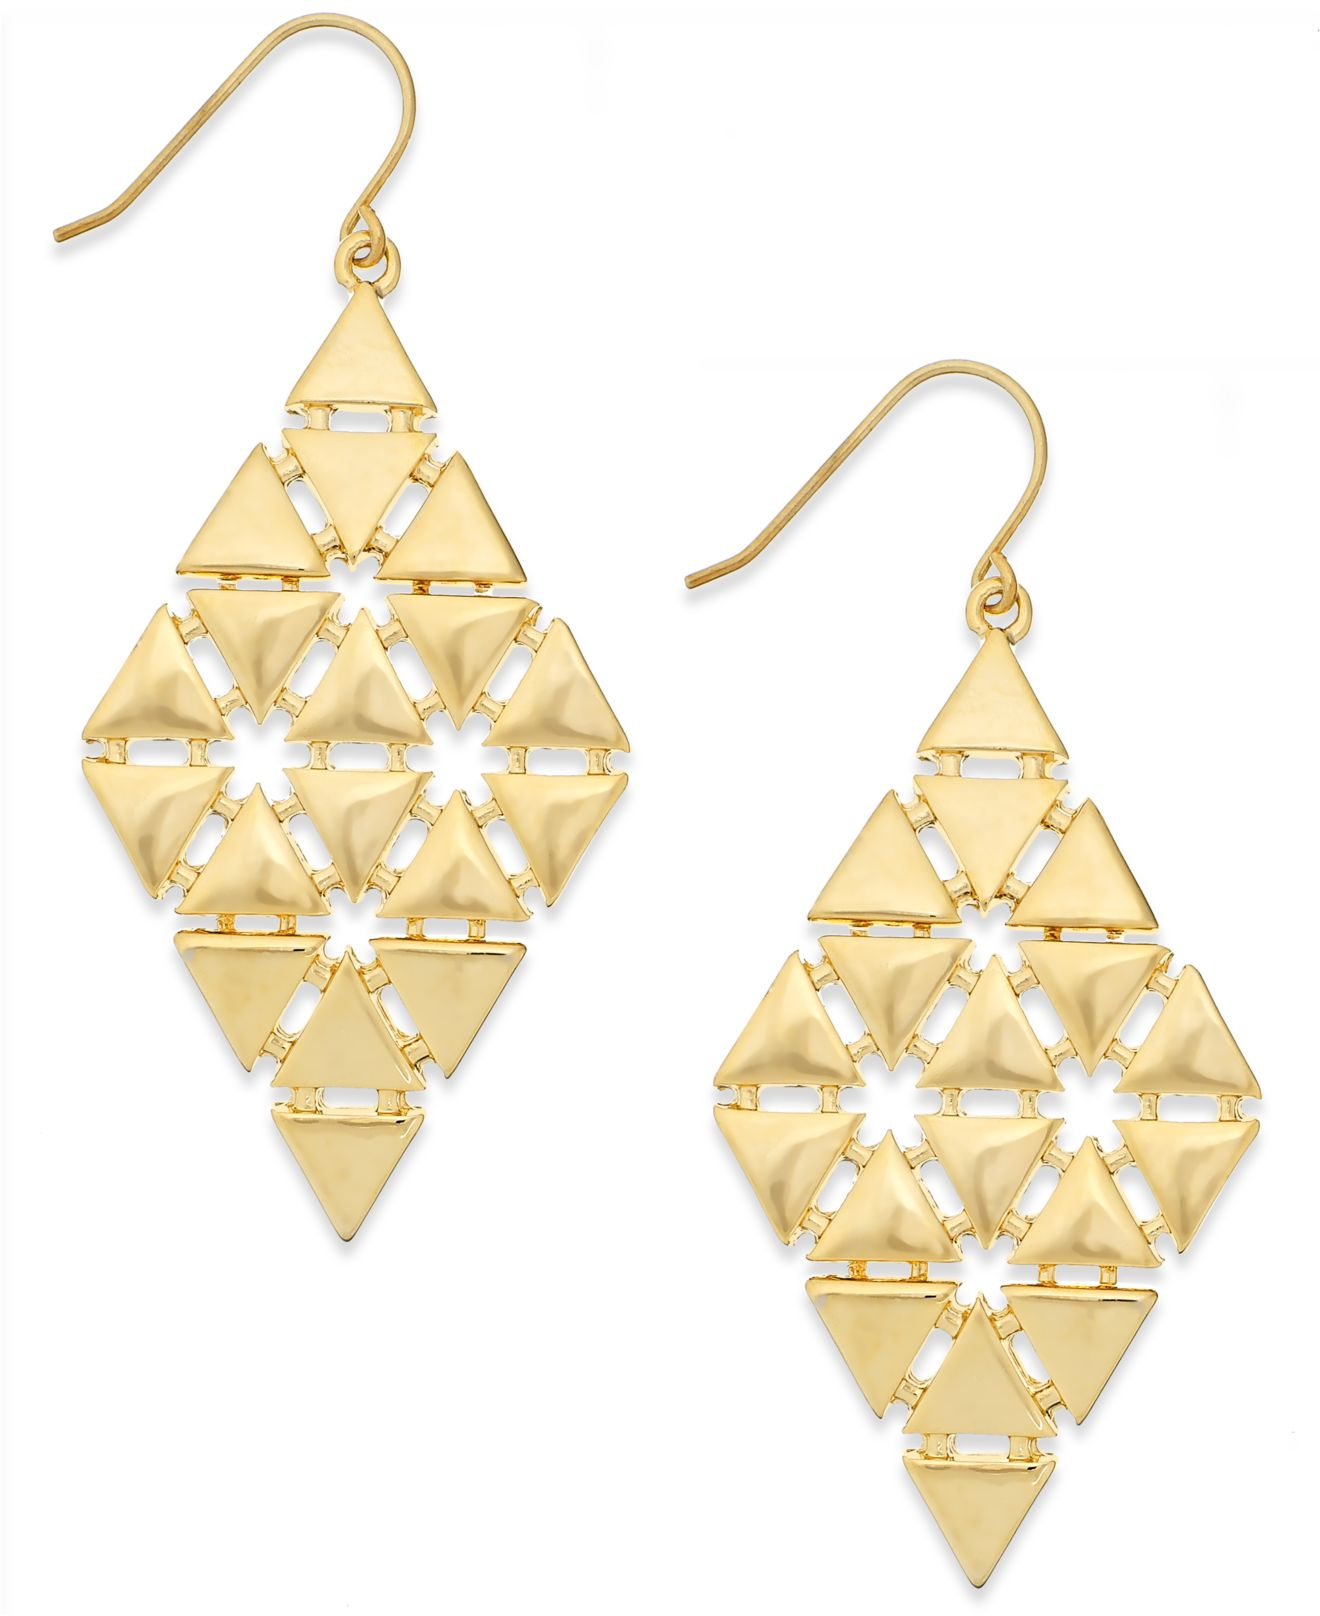 Lyst Lauren by ralph lauren Gold Tone Triangle Chandelier